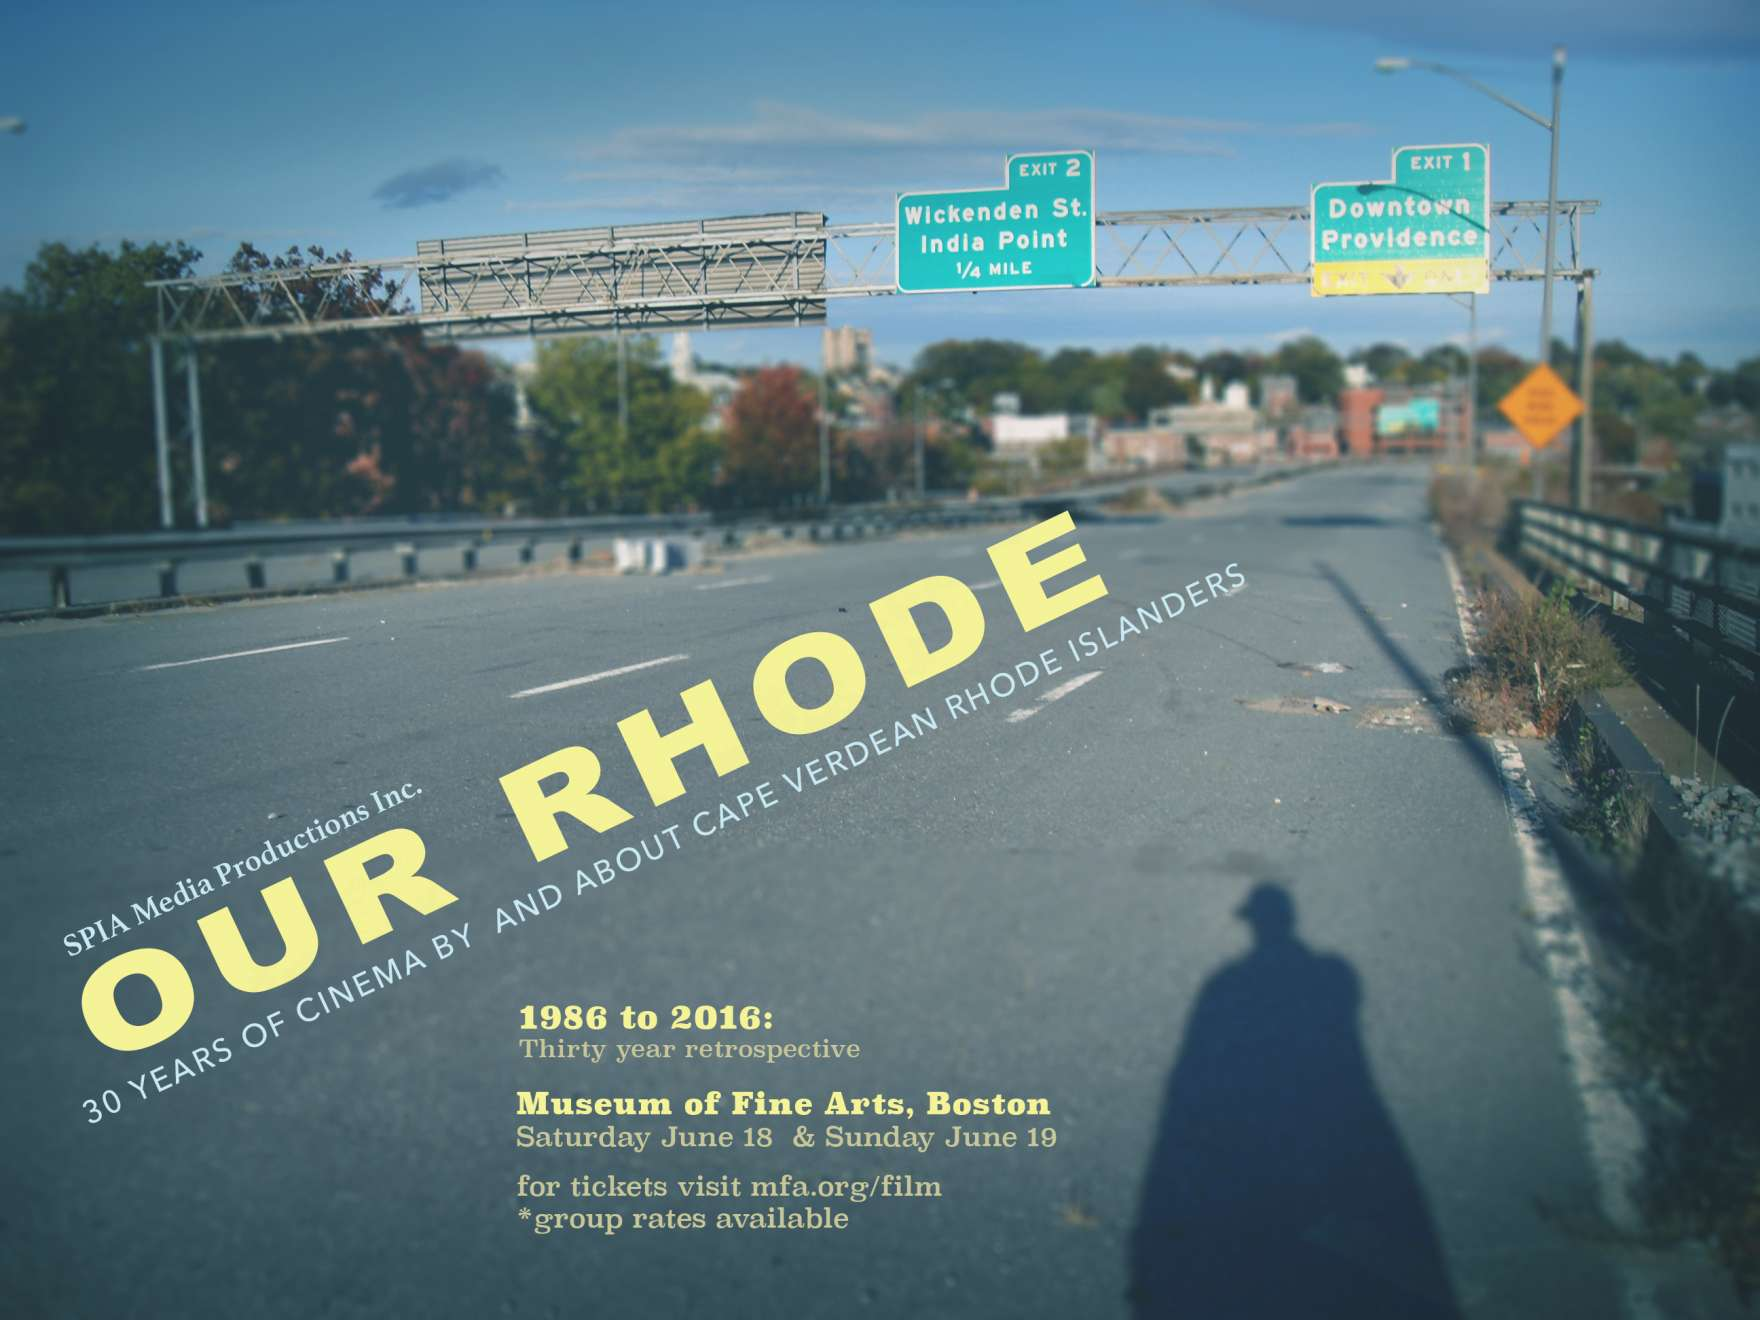 Our Rhode Poster Image